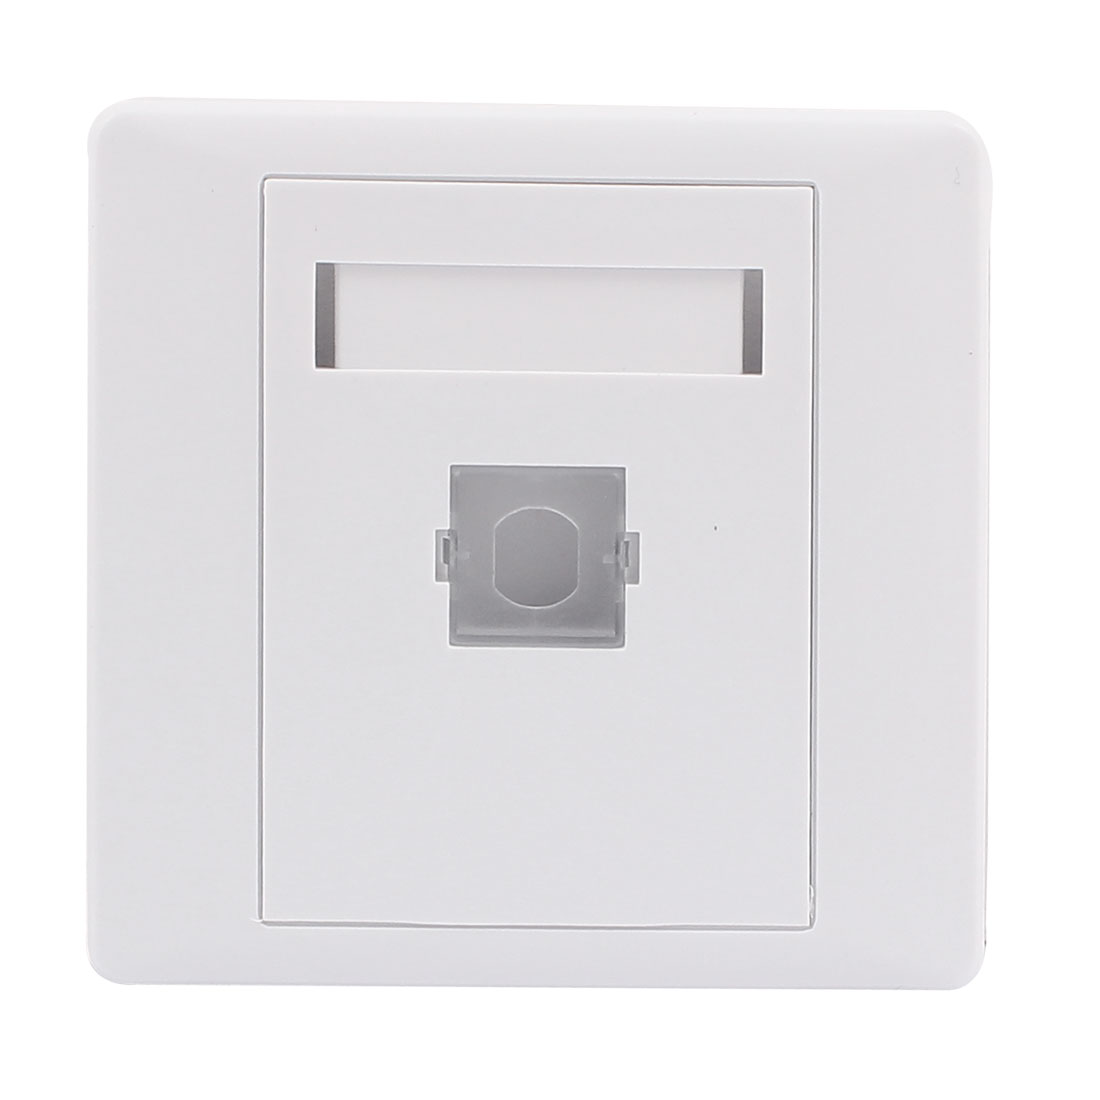 FC Fiber Optical Patch Cord Connector Mount Sockets Wall Plate Panel